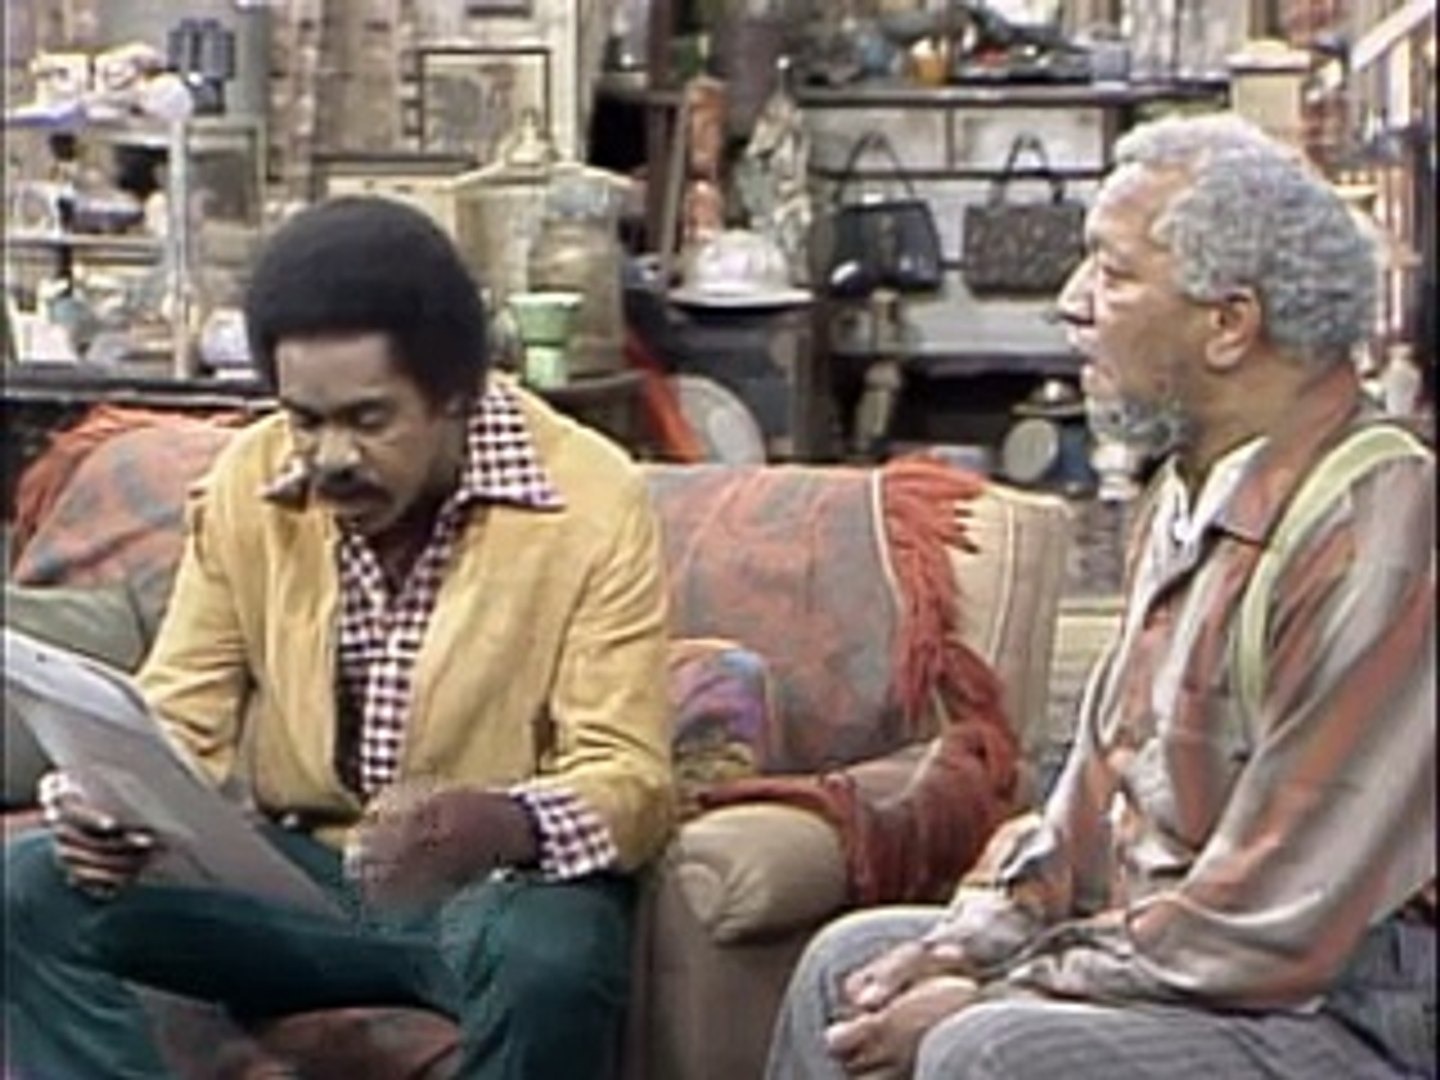 SANFORD AND SON S4 E07